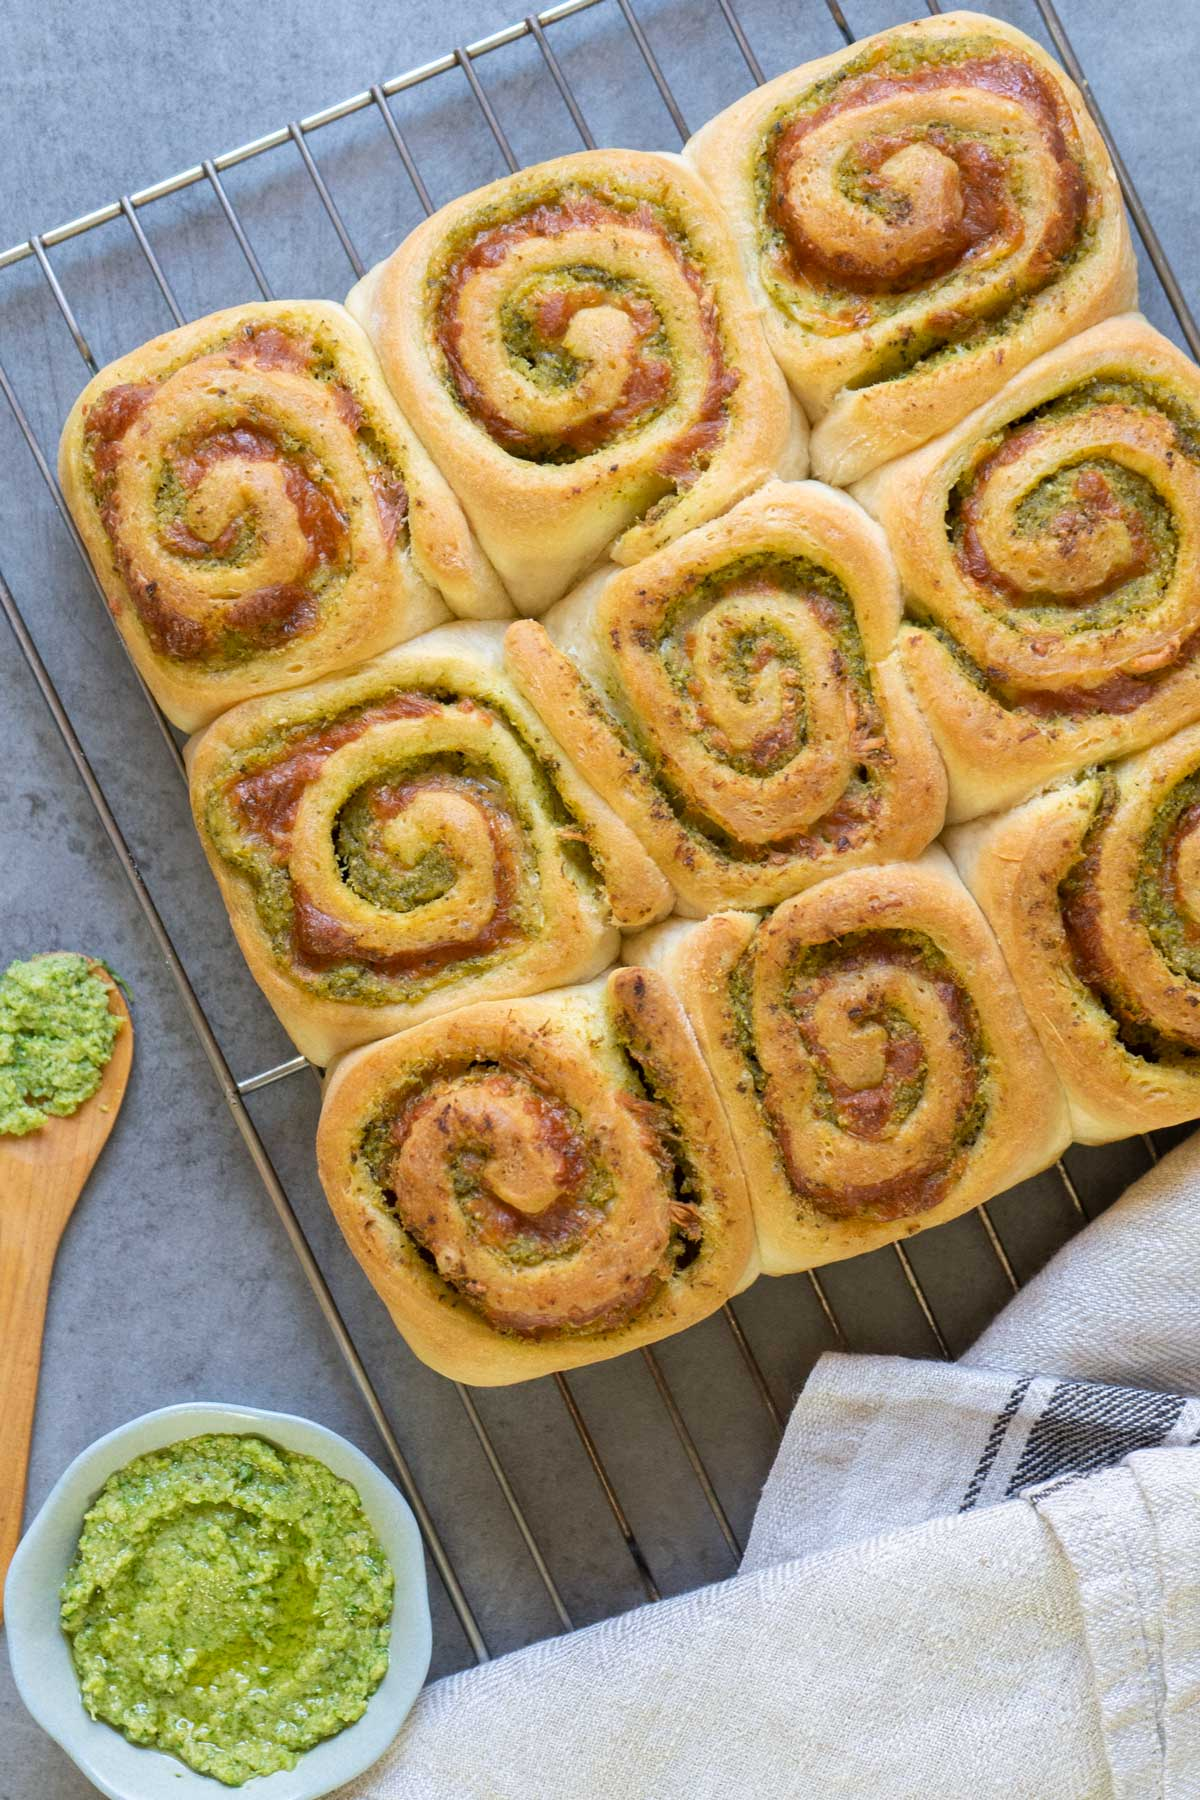 Pesto buns on a cooling rack